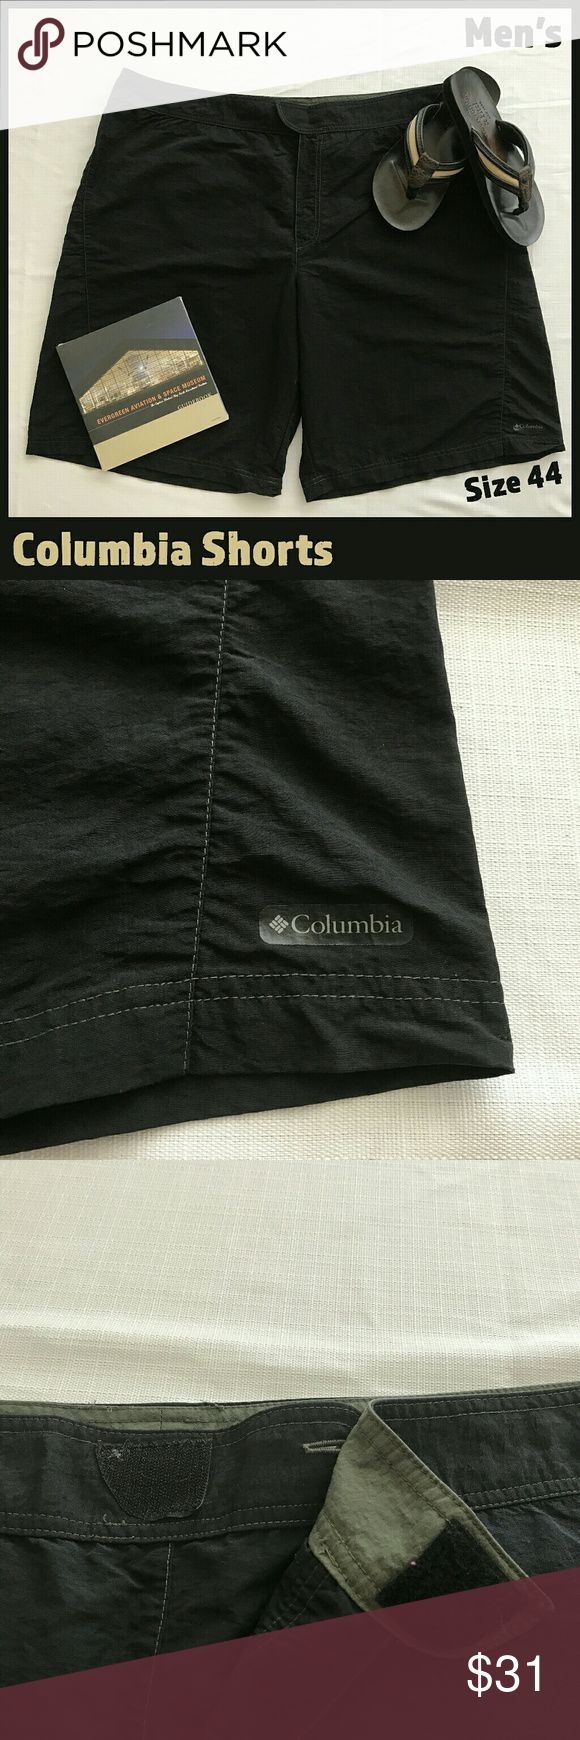 """🆕 Men's Columbia Sportswear Black Shorts These light nylon shorts from Columbia Sportswear are in EUC and will quickly become your favorite summer shorts!  They have velcro closures at both the waist and back pockets.   Inseam measurement: 12""""   From a smoke-free and happy-to-bundle closet.   The Abercrombie & Fitch flip-flops are available in a separate listing.    No trades or transactions outside of Poshmark.  [T290] Columbia Shorts"""